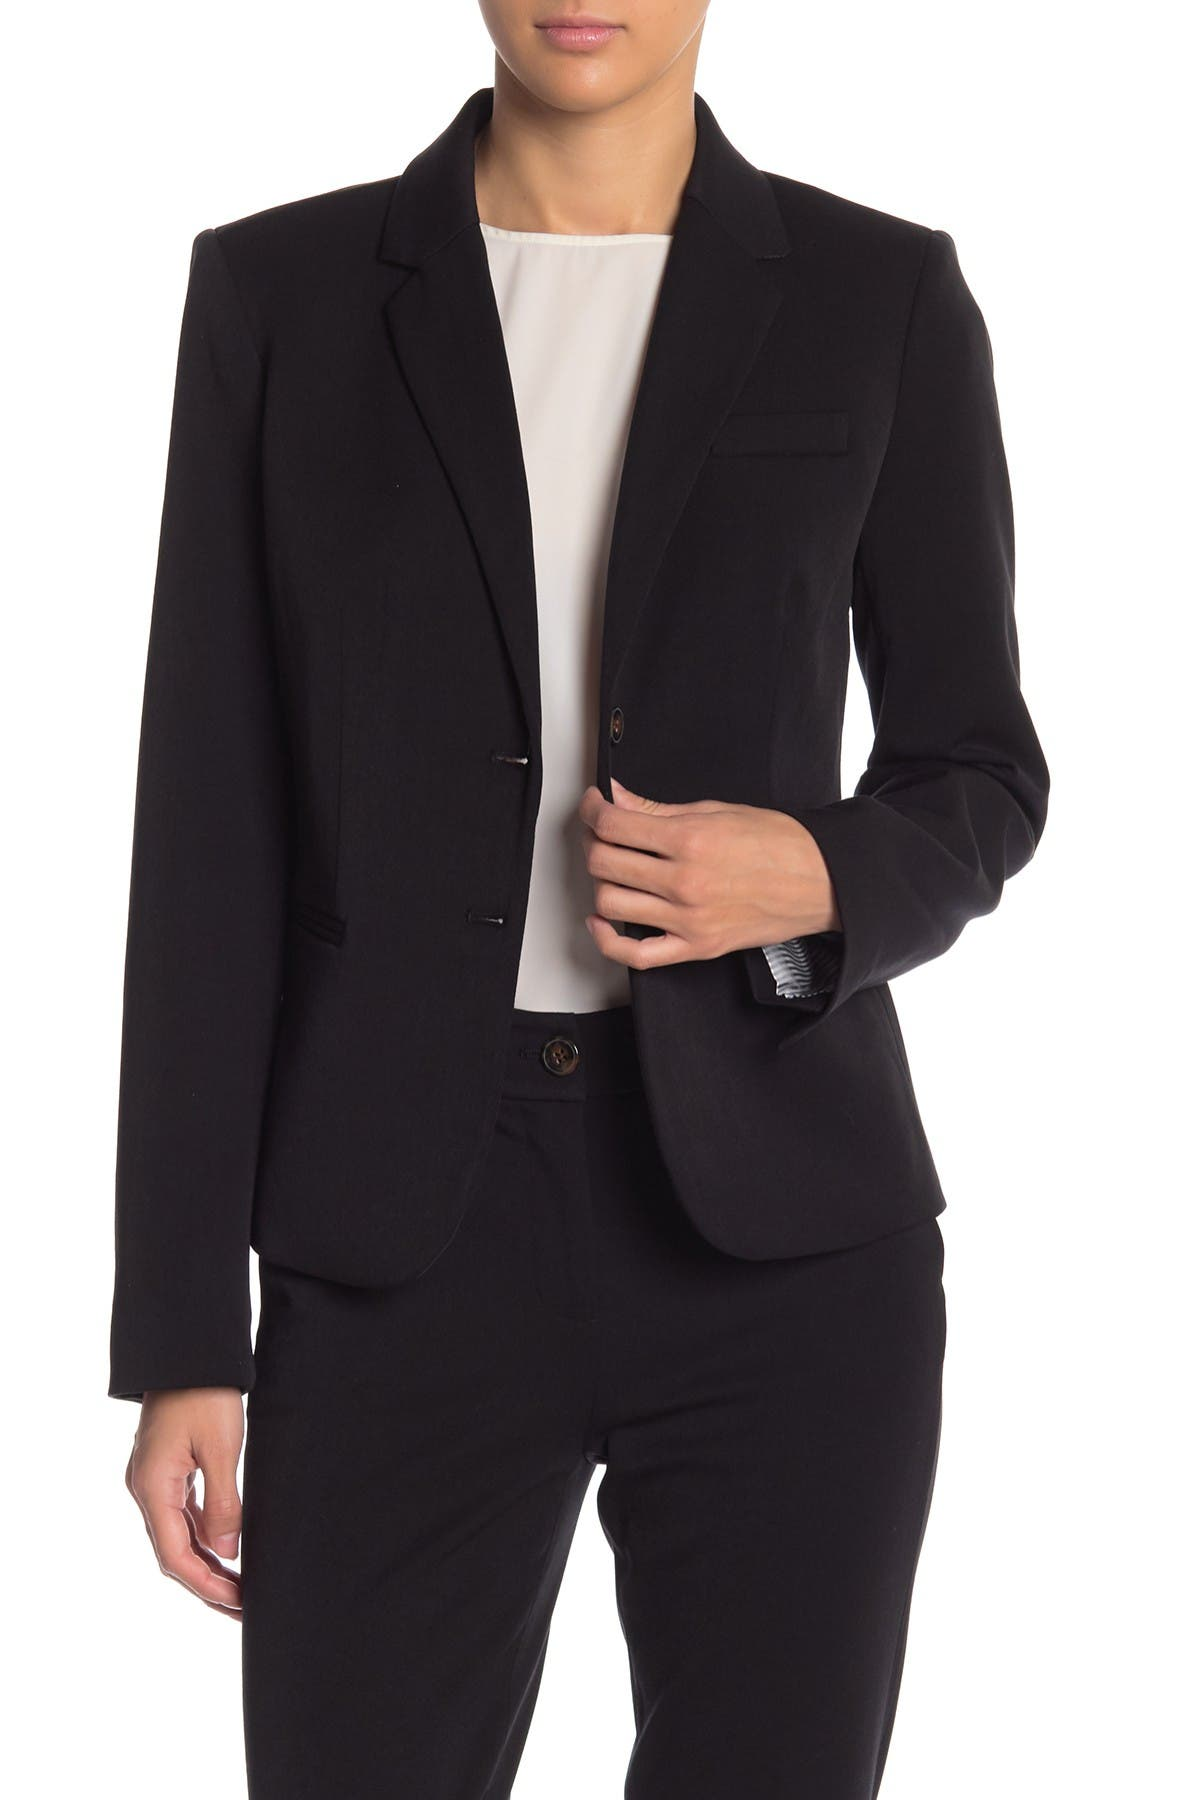 Image of J. Crew Schoolboy Notch Lapel Blazer